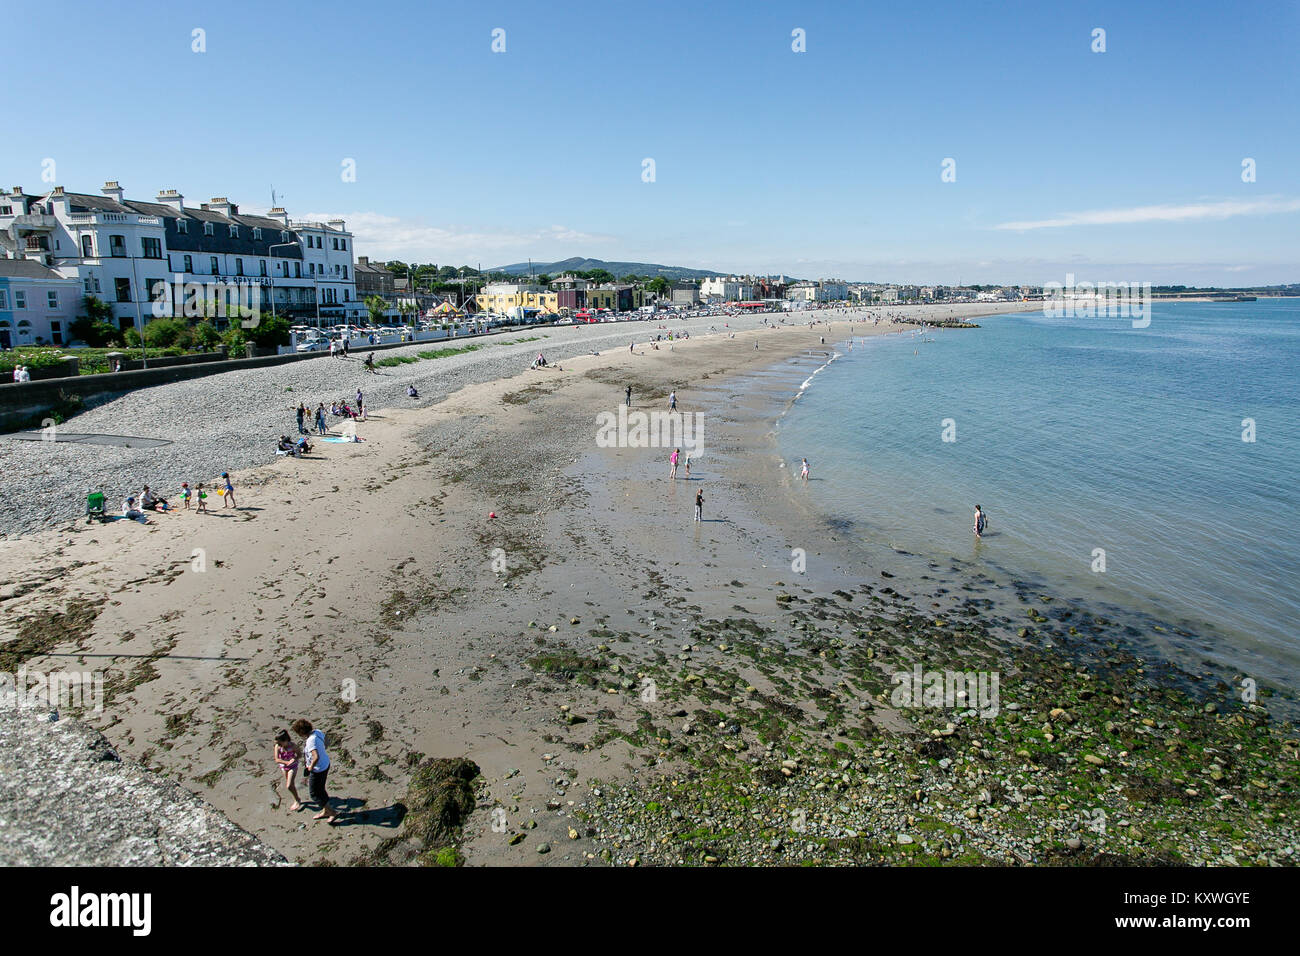 THE 10 BEST Things to Do in Bray - June 2020 (with Photos